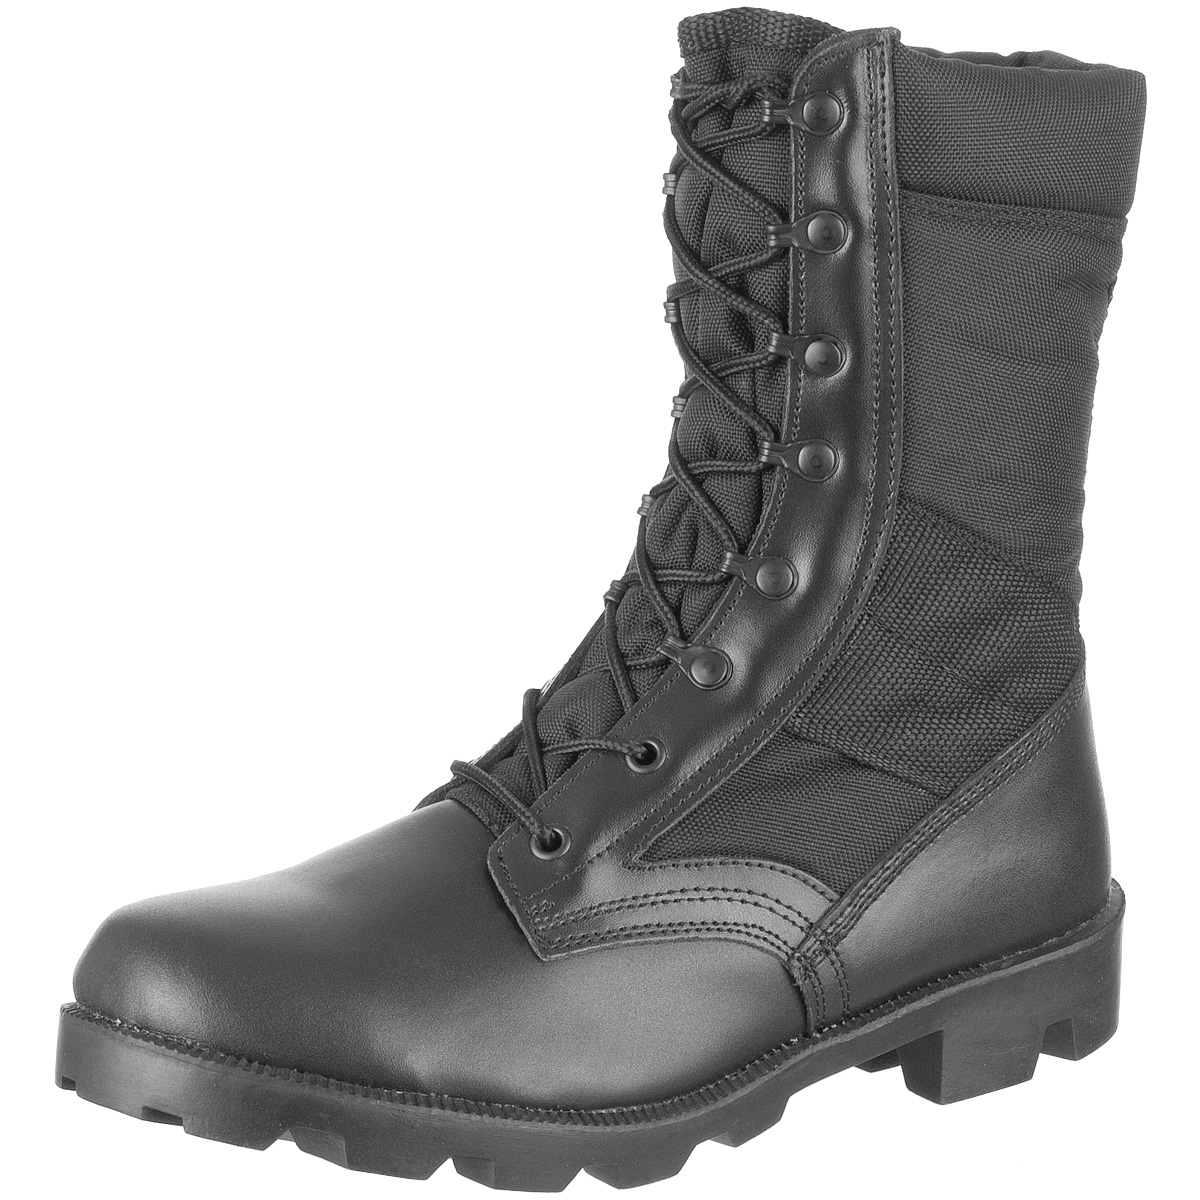 Find great deals on eBay for mens black army boots. Shop with confidence.